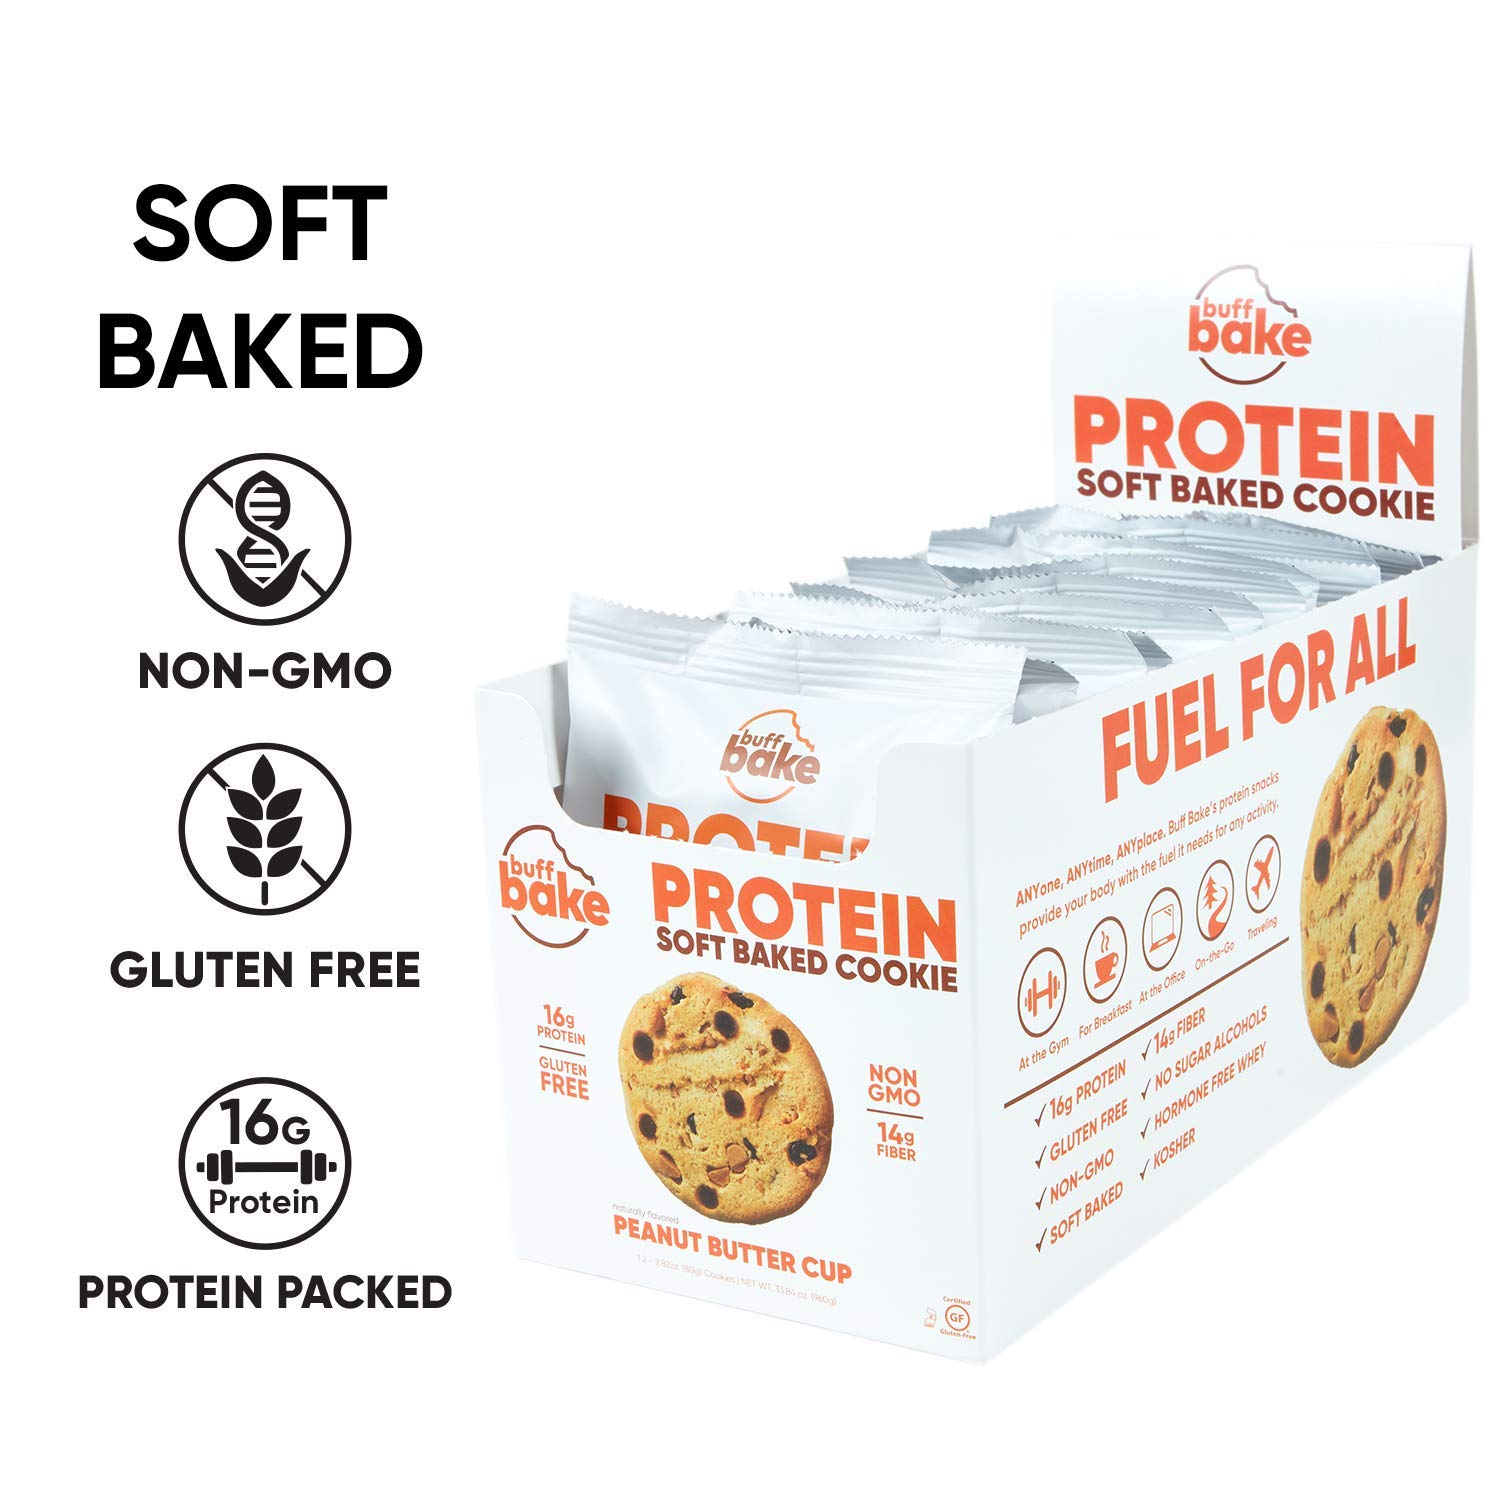 Buff Bake Protein Cookie | Peanut Butter Cup | Soft Baked | Gluten Free | Non-GMO Ingredients | 16g of Hormone-Free Whey Protein | (12Count, 2.82 oz) by Buff Bake (Image #3)